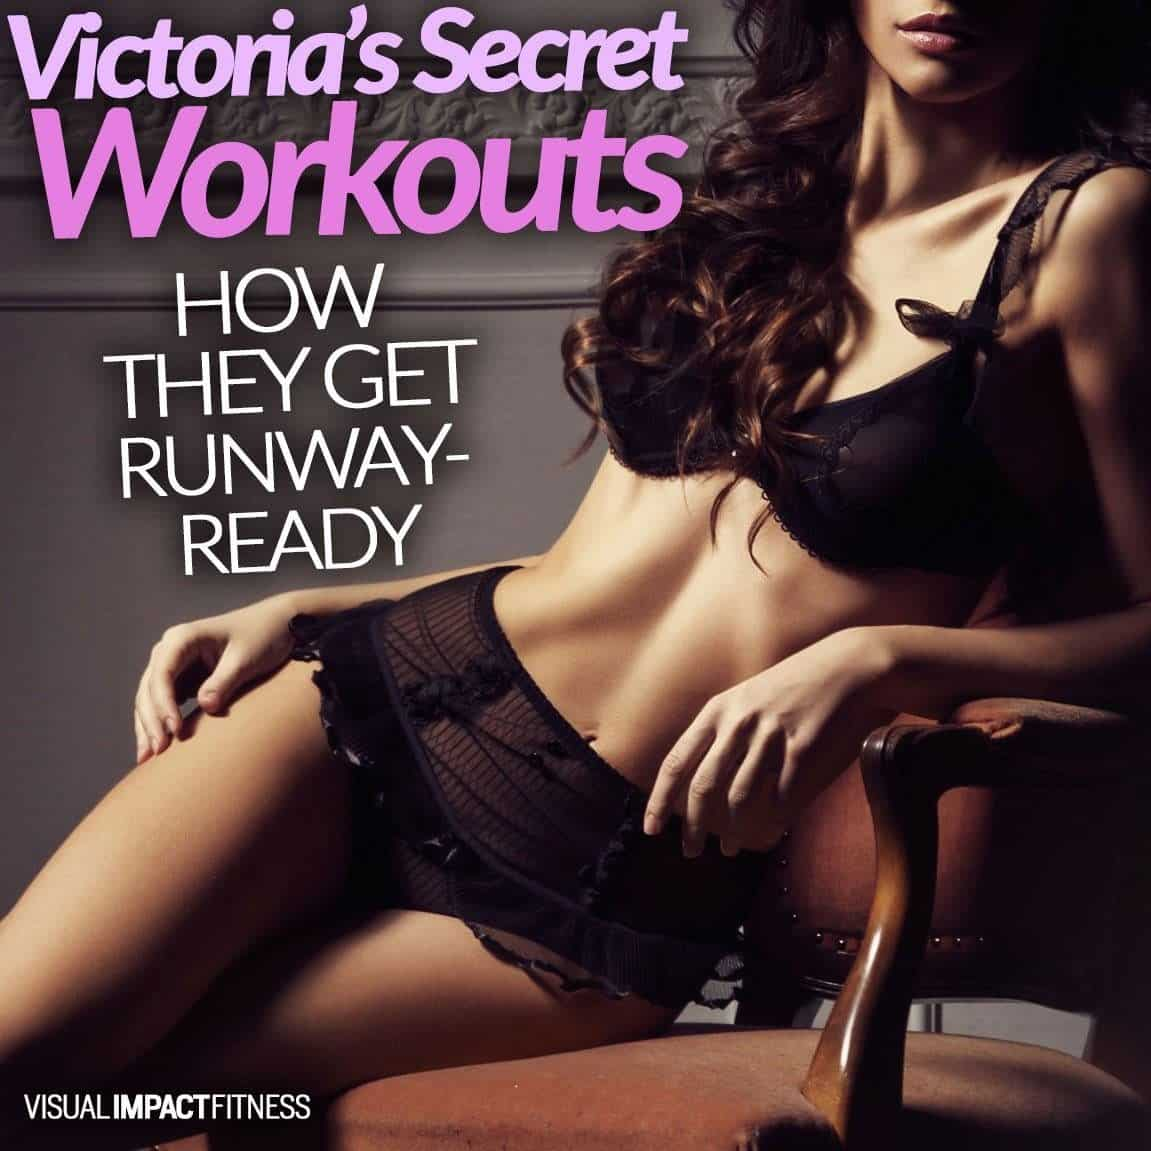 Victoria's Secret Workout for Butt and Abs